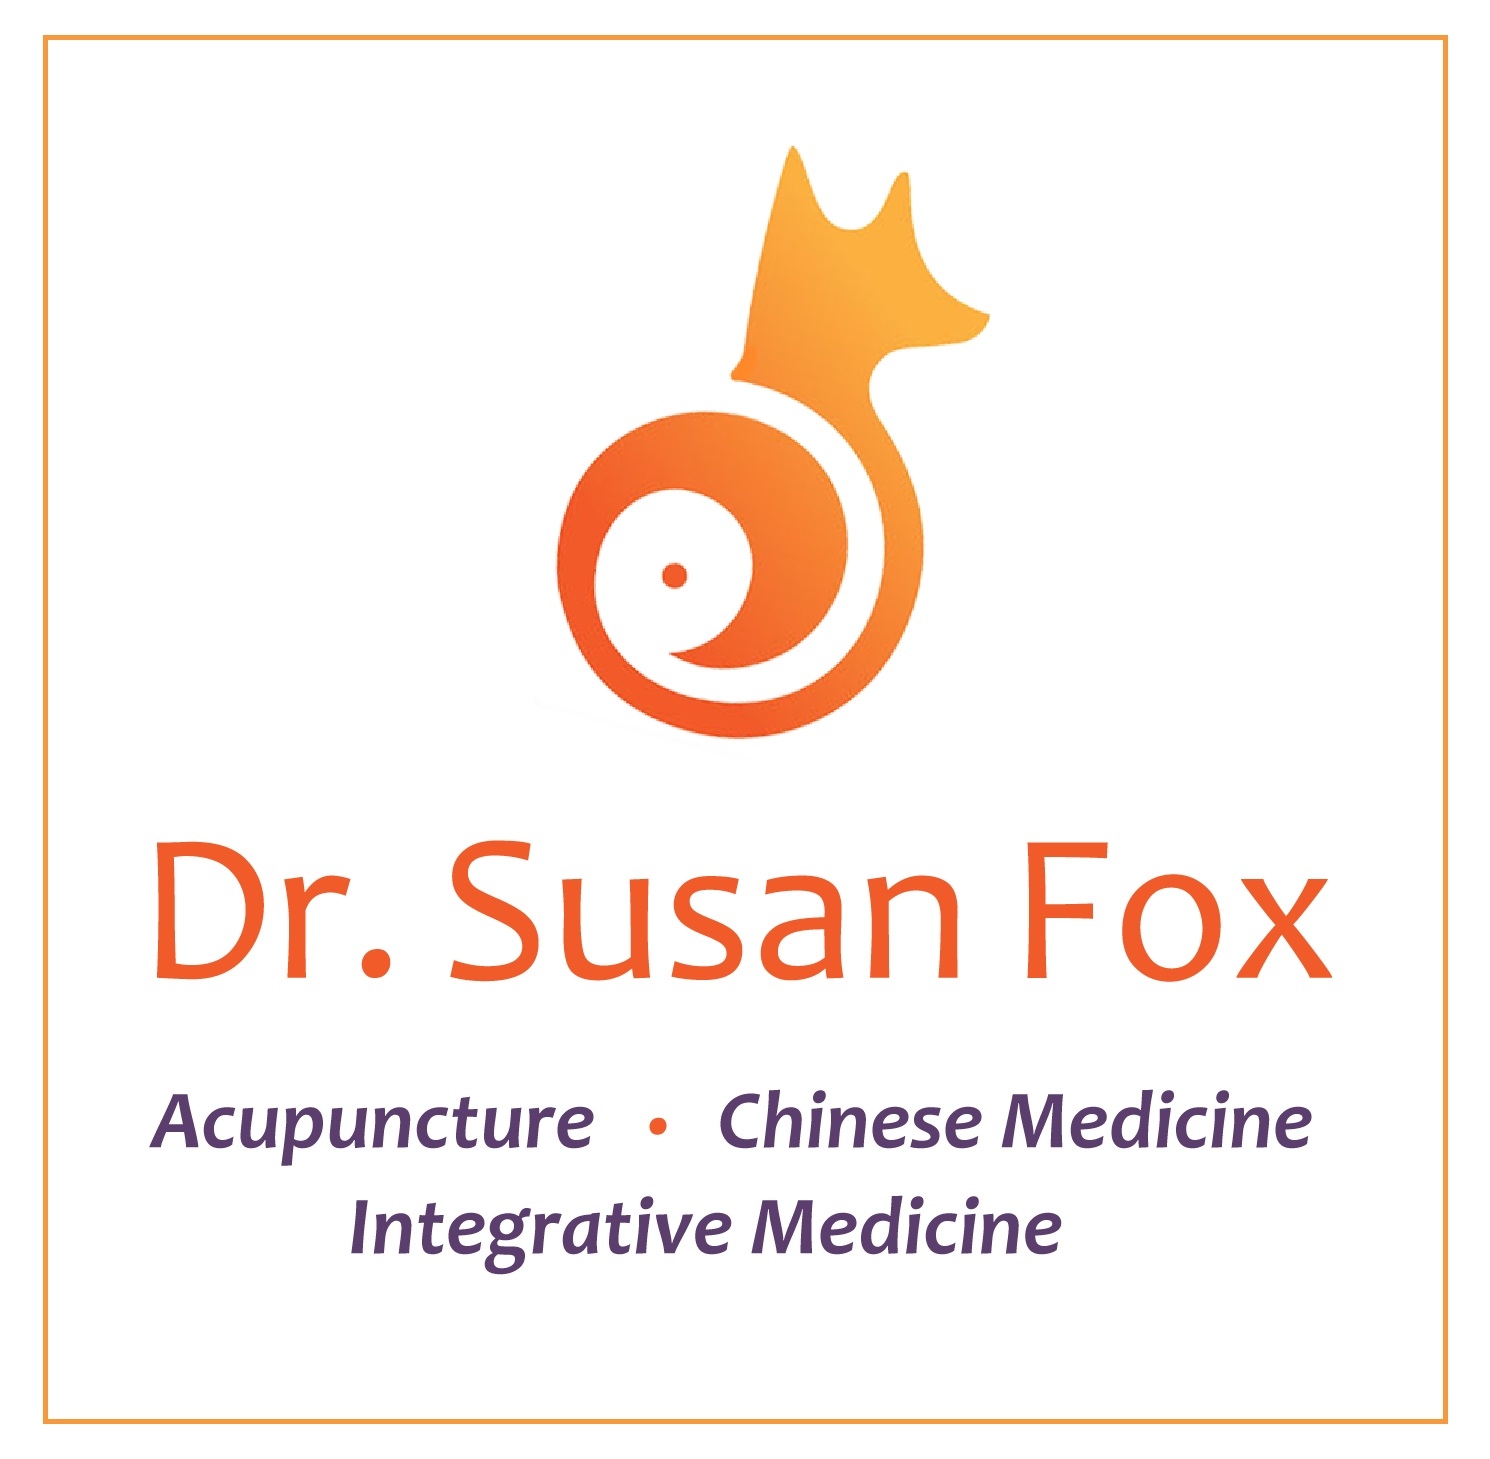 dr susan fox logo square with border